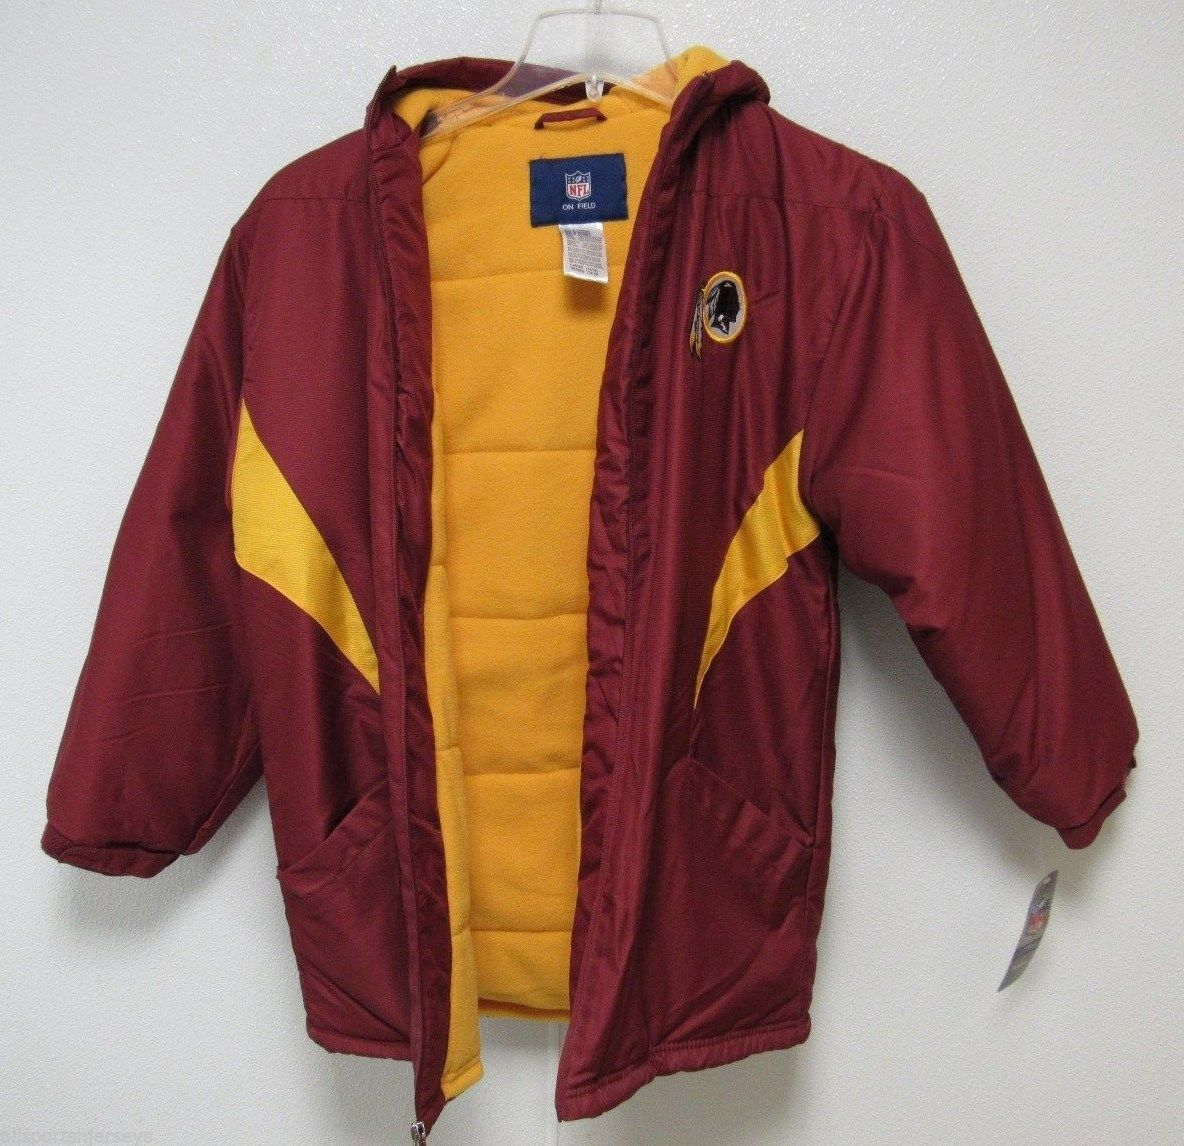 3c69ebcc Nwt Nfl Washington Redskins Sideline Jacket and 50 similar items